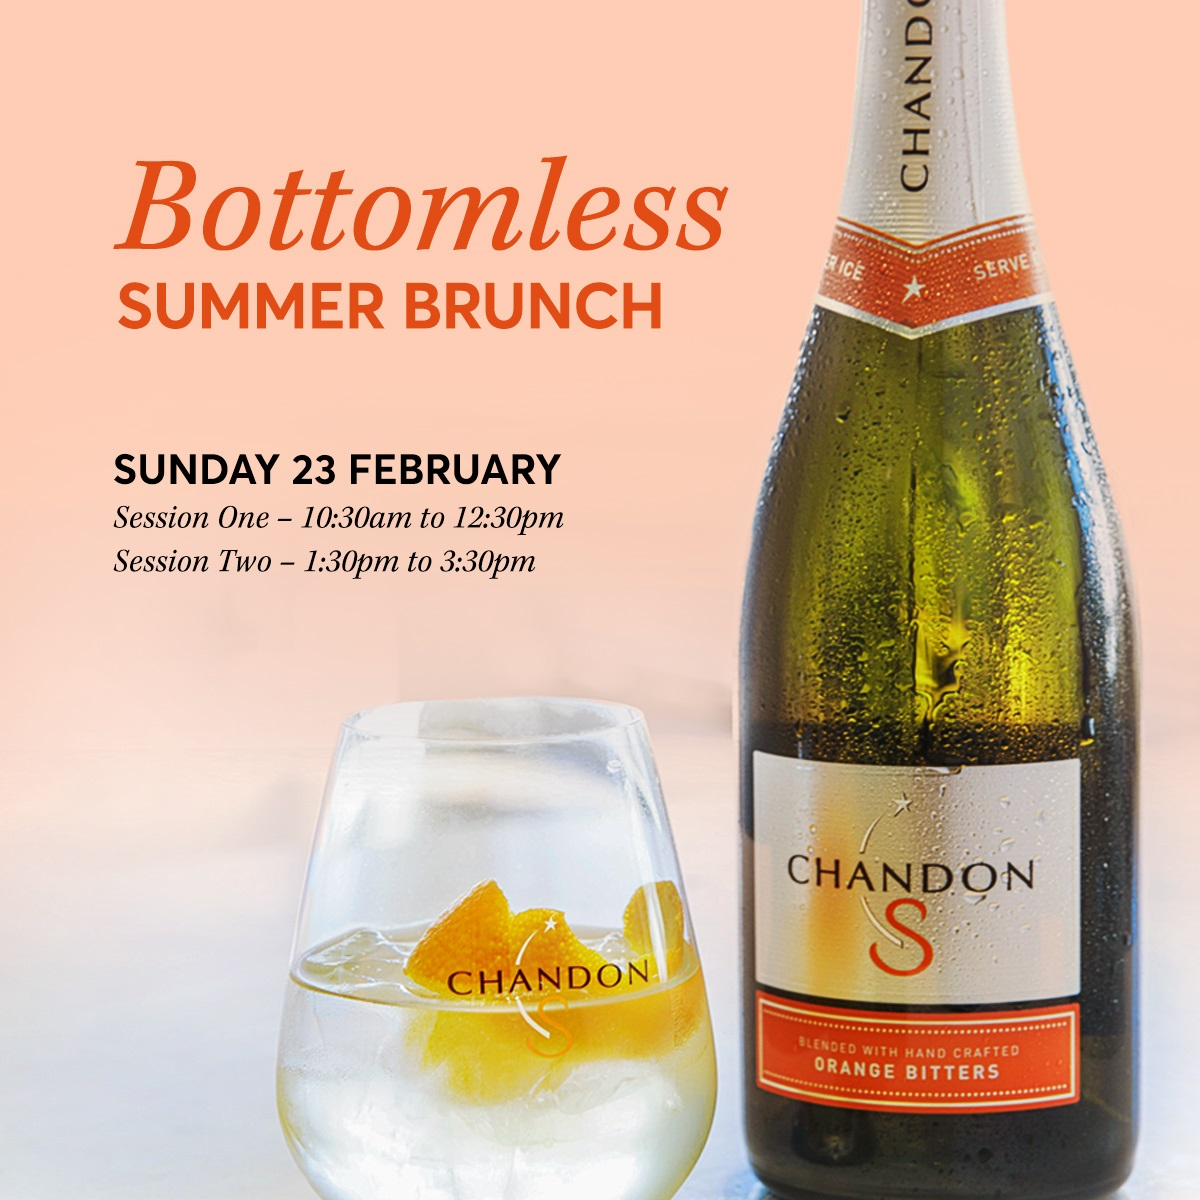 Bottomless 'Chandon S' Brunch Square